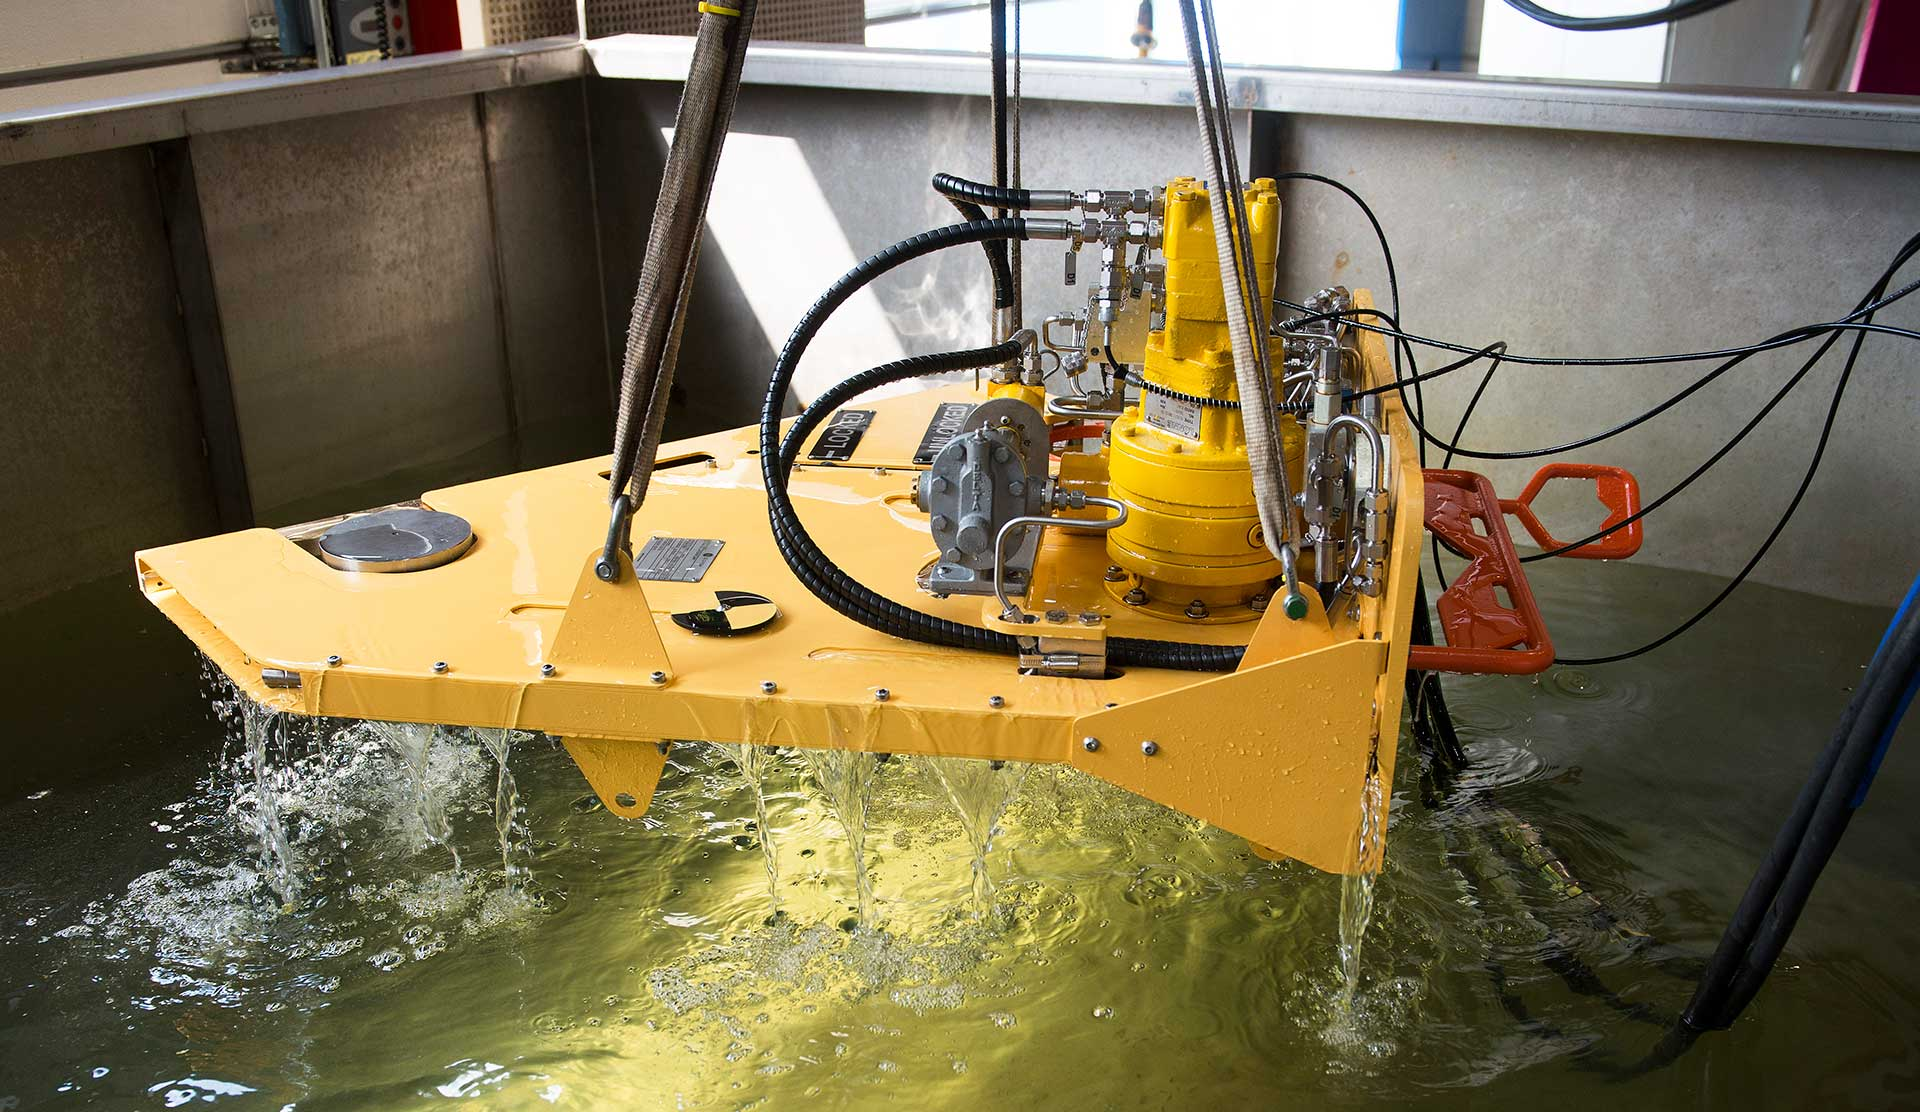 Saw for use subsea and remote operated through ROV.